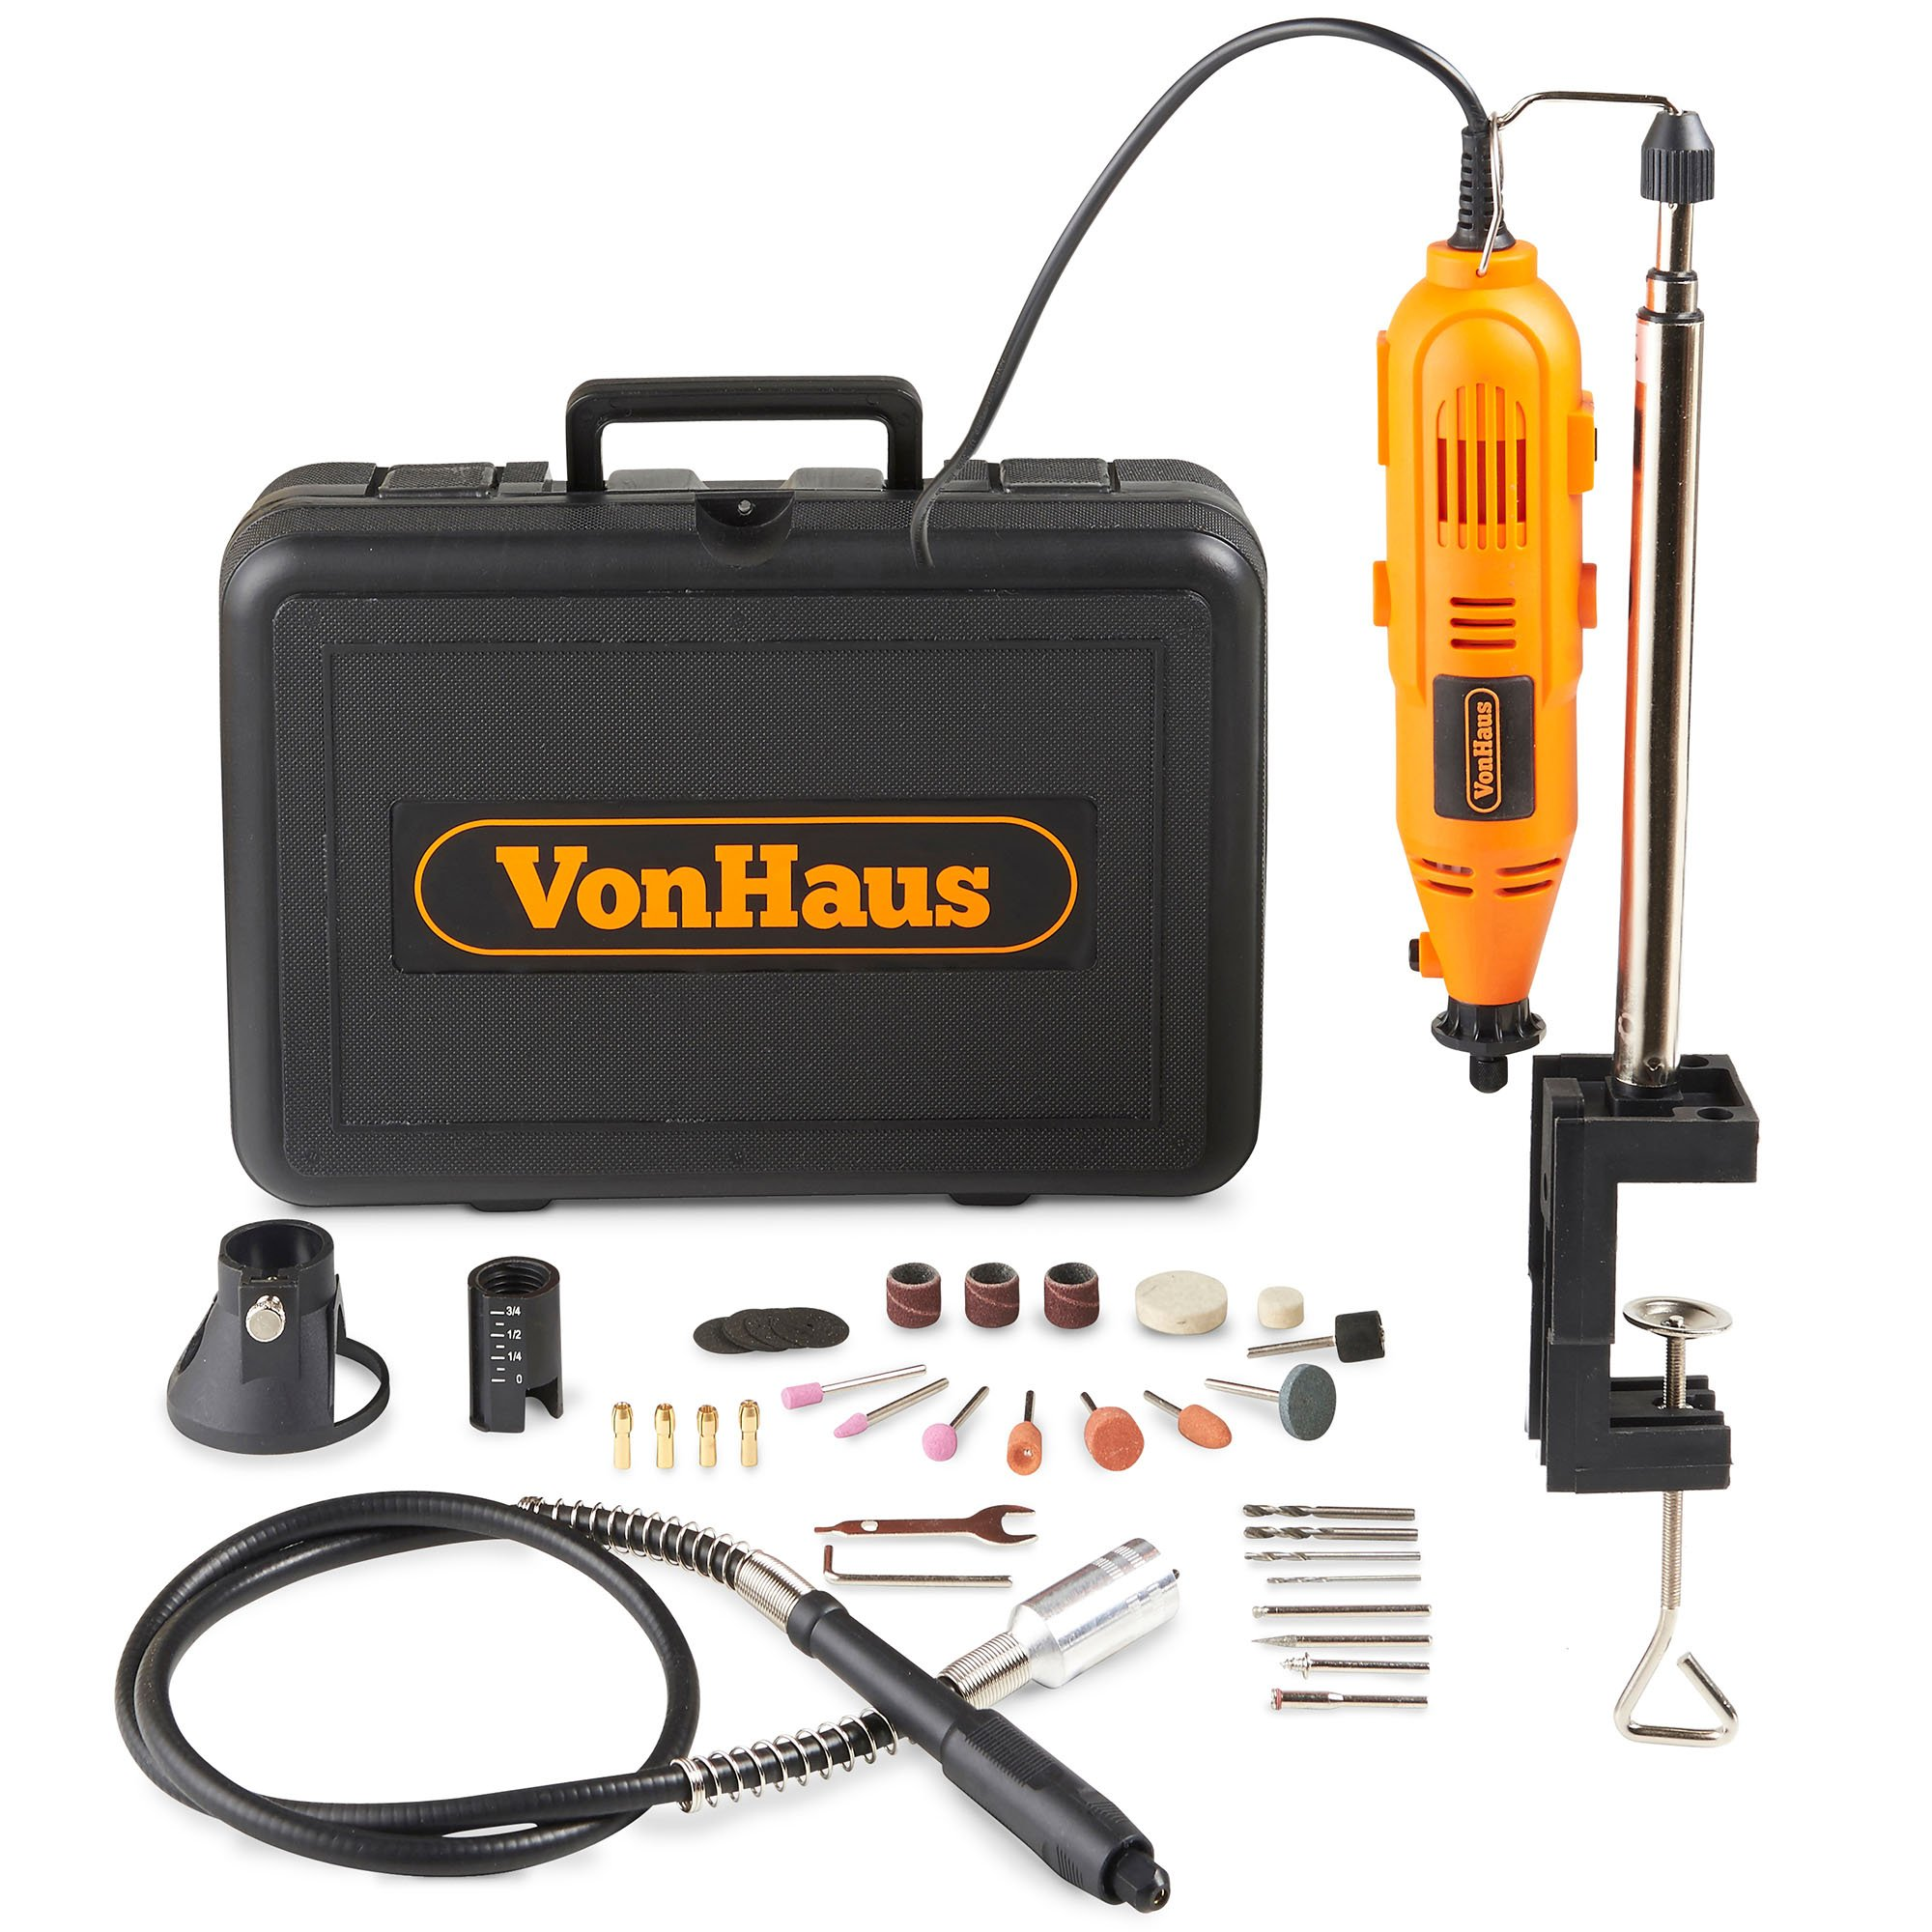 VonHaus Variable Speed Rotary Tool Kit with Stand, Storage Case and Flexi-shaft Including 34 Piece Multi-functional Accessory Tool Bits Set For Cutting, Sanding and Polishing by VonHaus